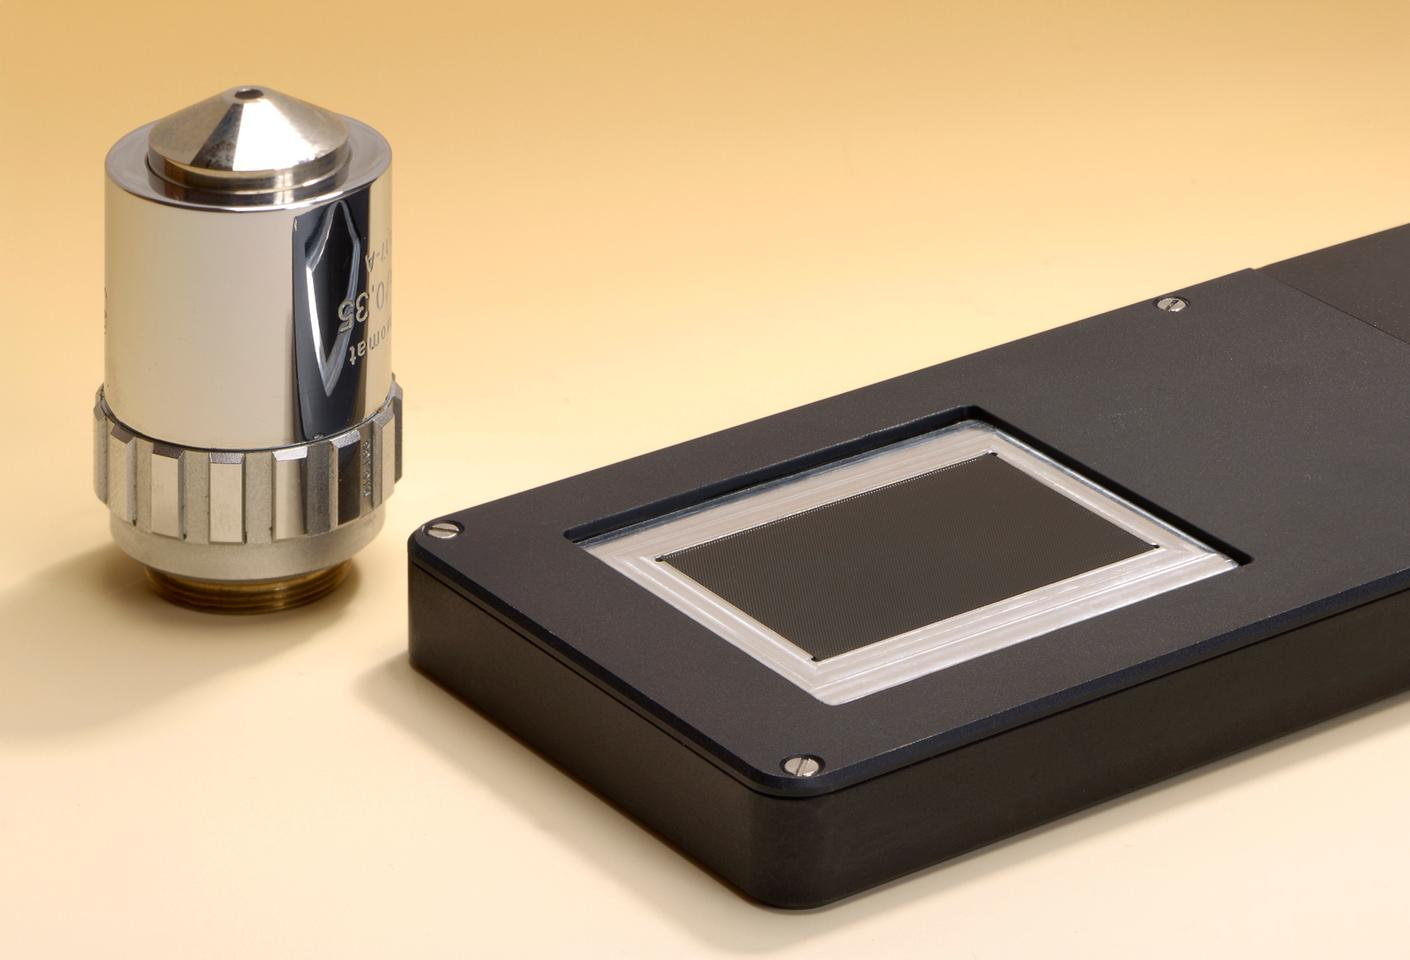 Scientists have created a thin handheld microscope that can obtain high-quality images in a fraction of the time required by traditional scanning microscopes (Photo: Fraunhofer)